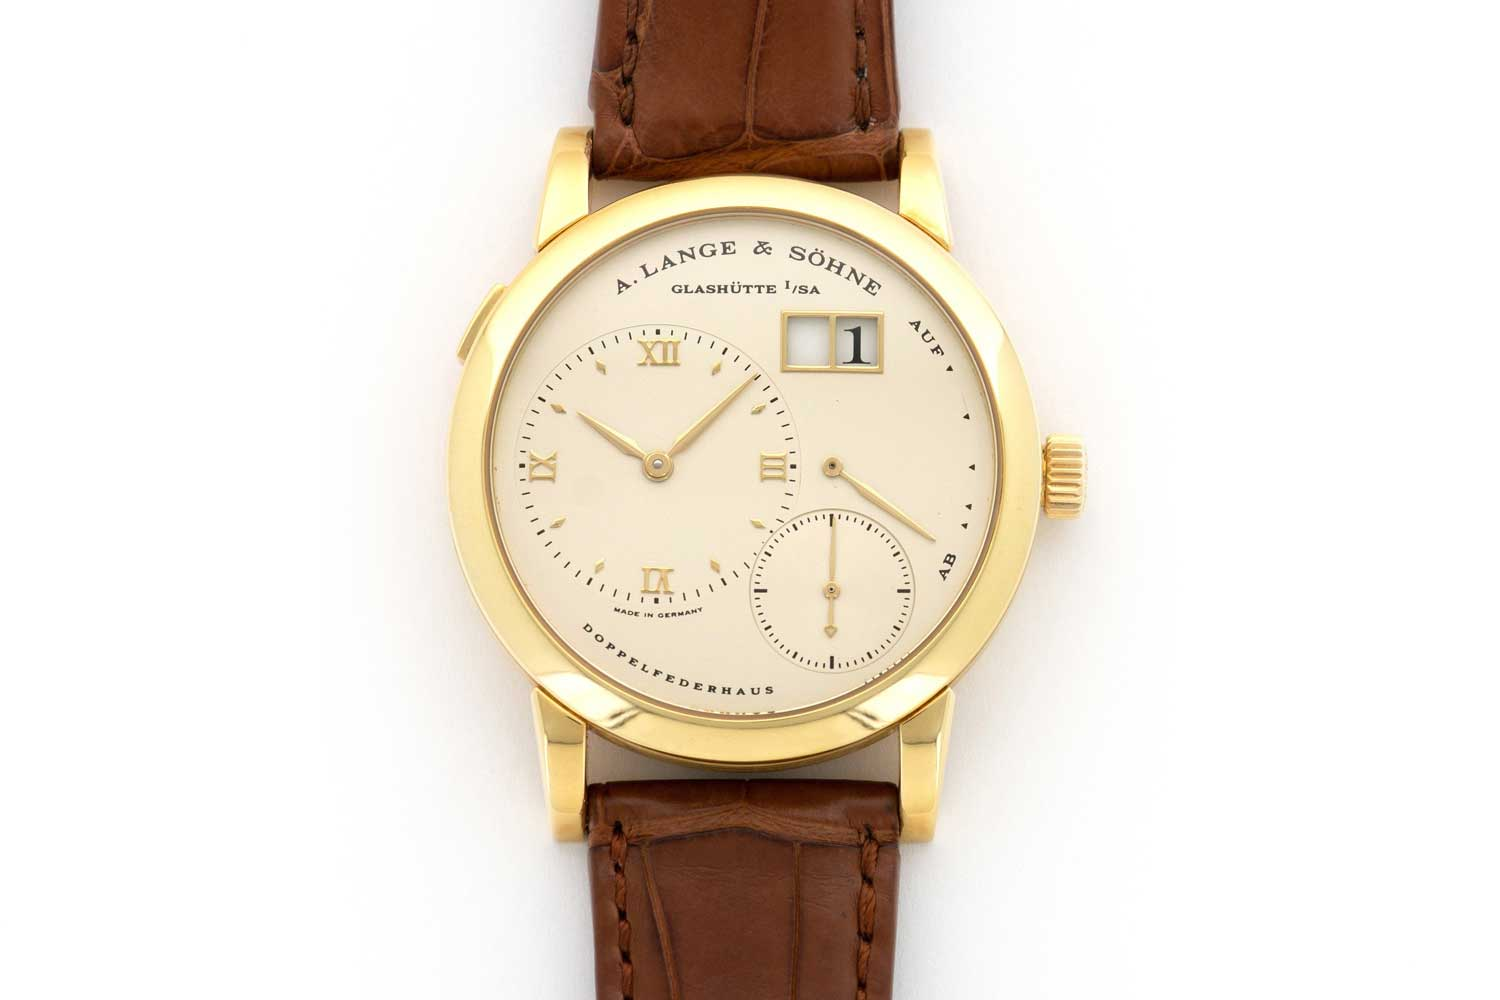 The Lange 1 was launched in 1994, the 24th of October as the ref. 101.021 (Image: thekeystone.com)